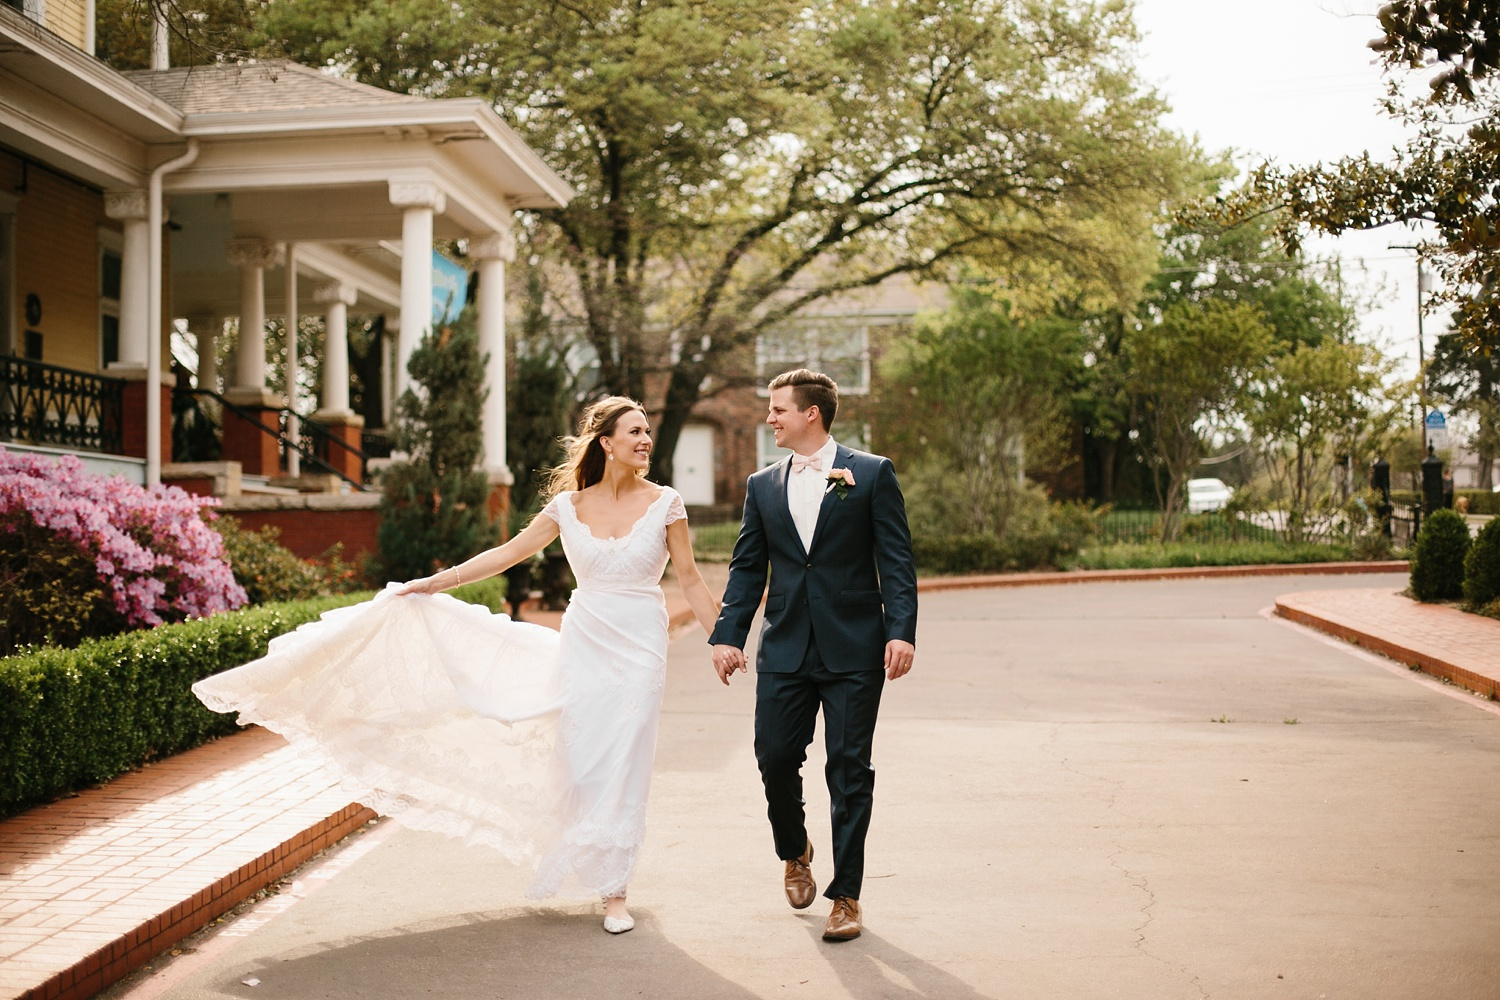 Amber + Daniel an intimate, simple, spring ceremony at Heard Craig Center and reception at Gather in McKinney, Texas by North Texas Wedding Photographer Rachel Meagan Photography 093